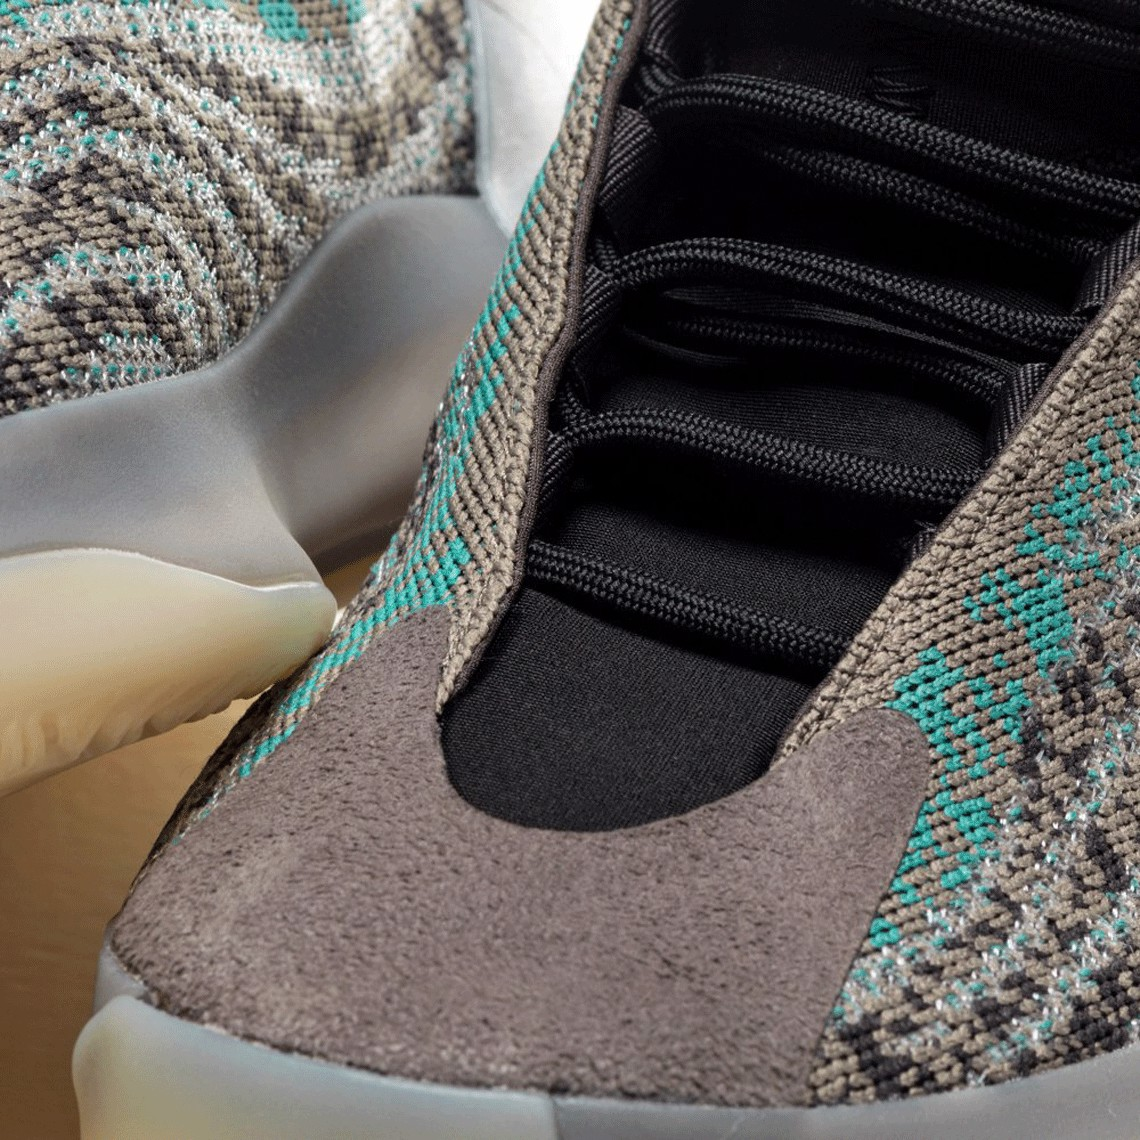 Adidas Yeezy Quantum Teal Blue G58864